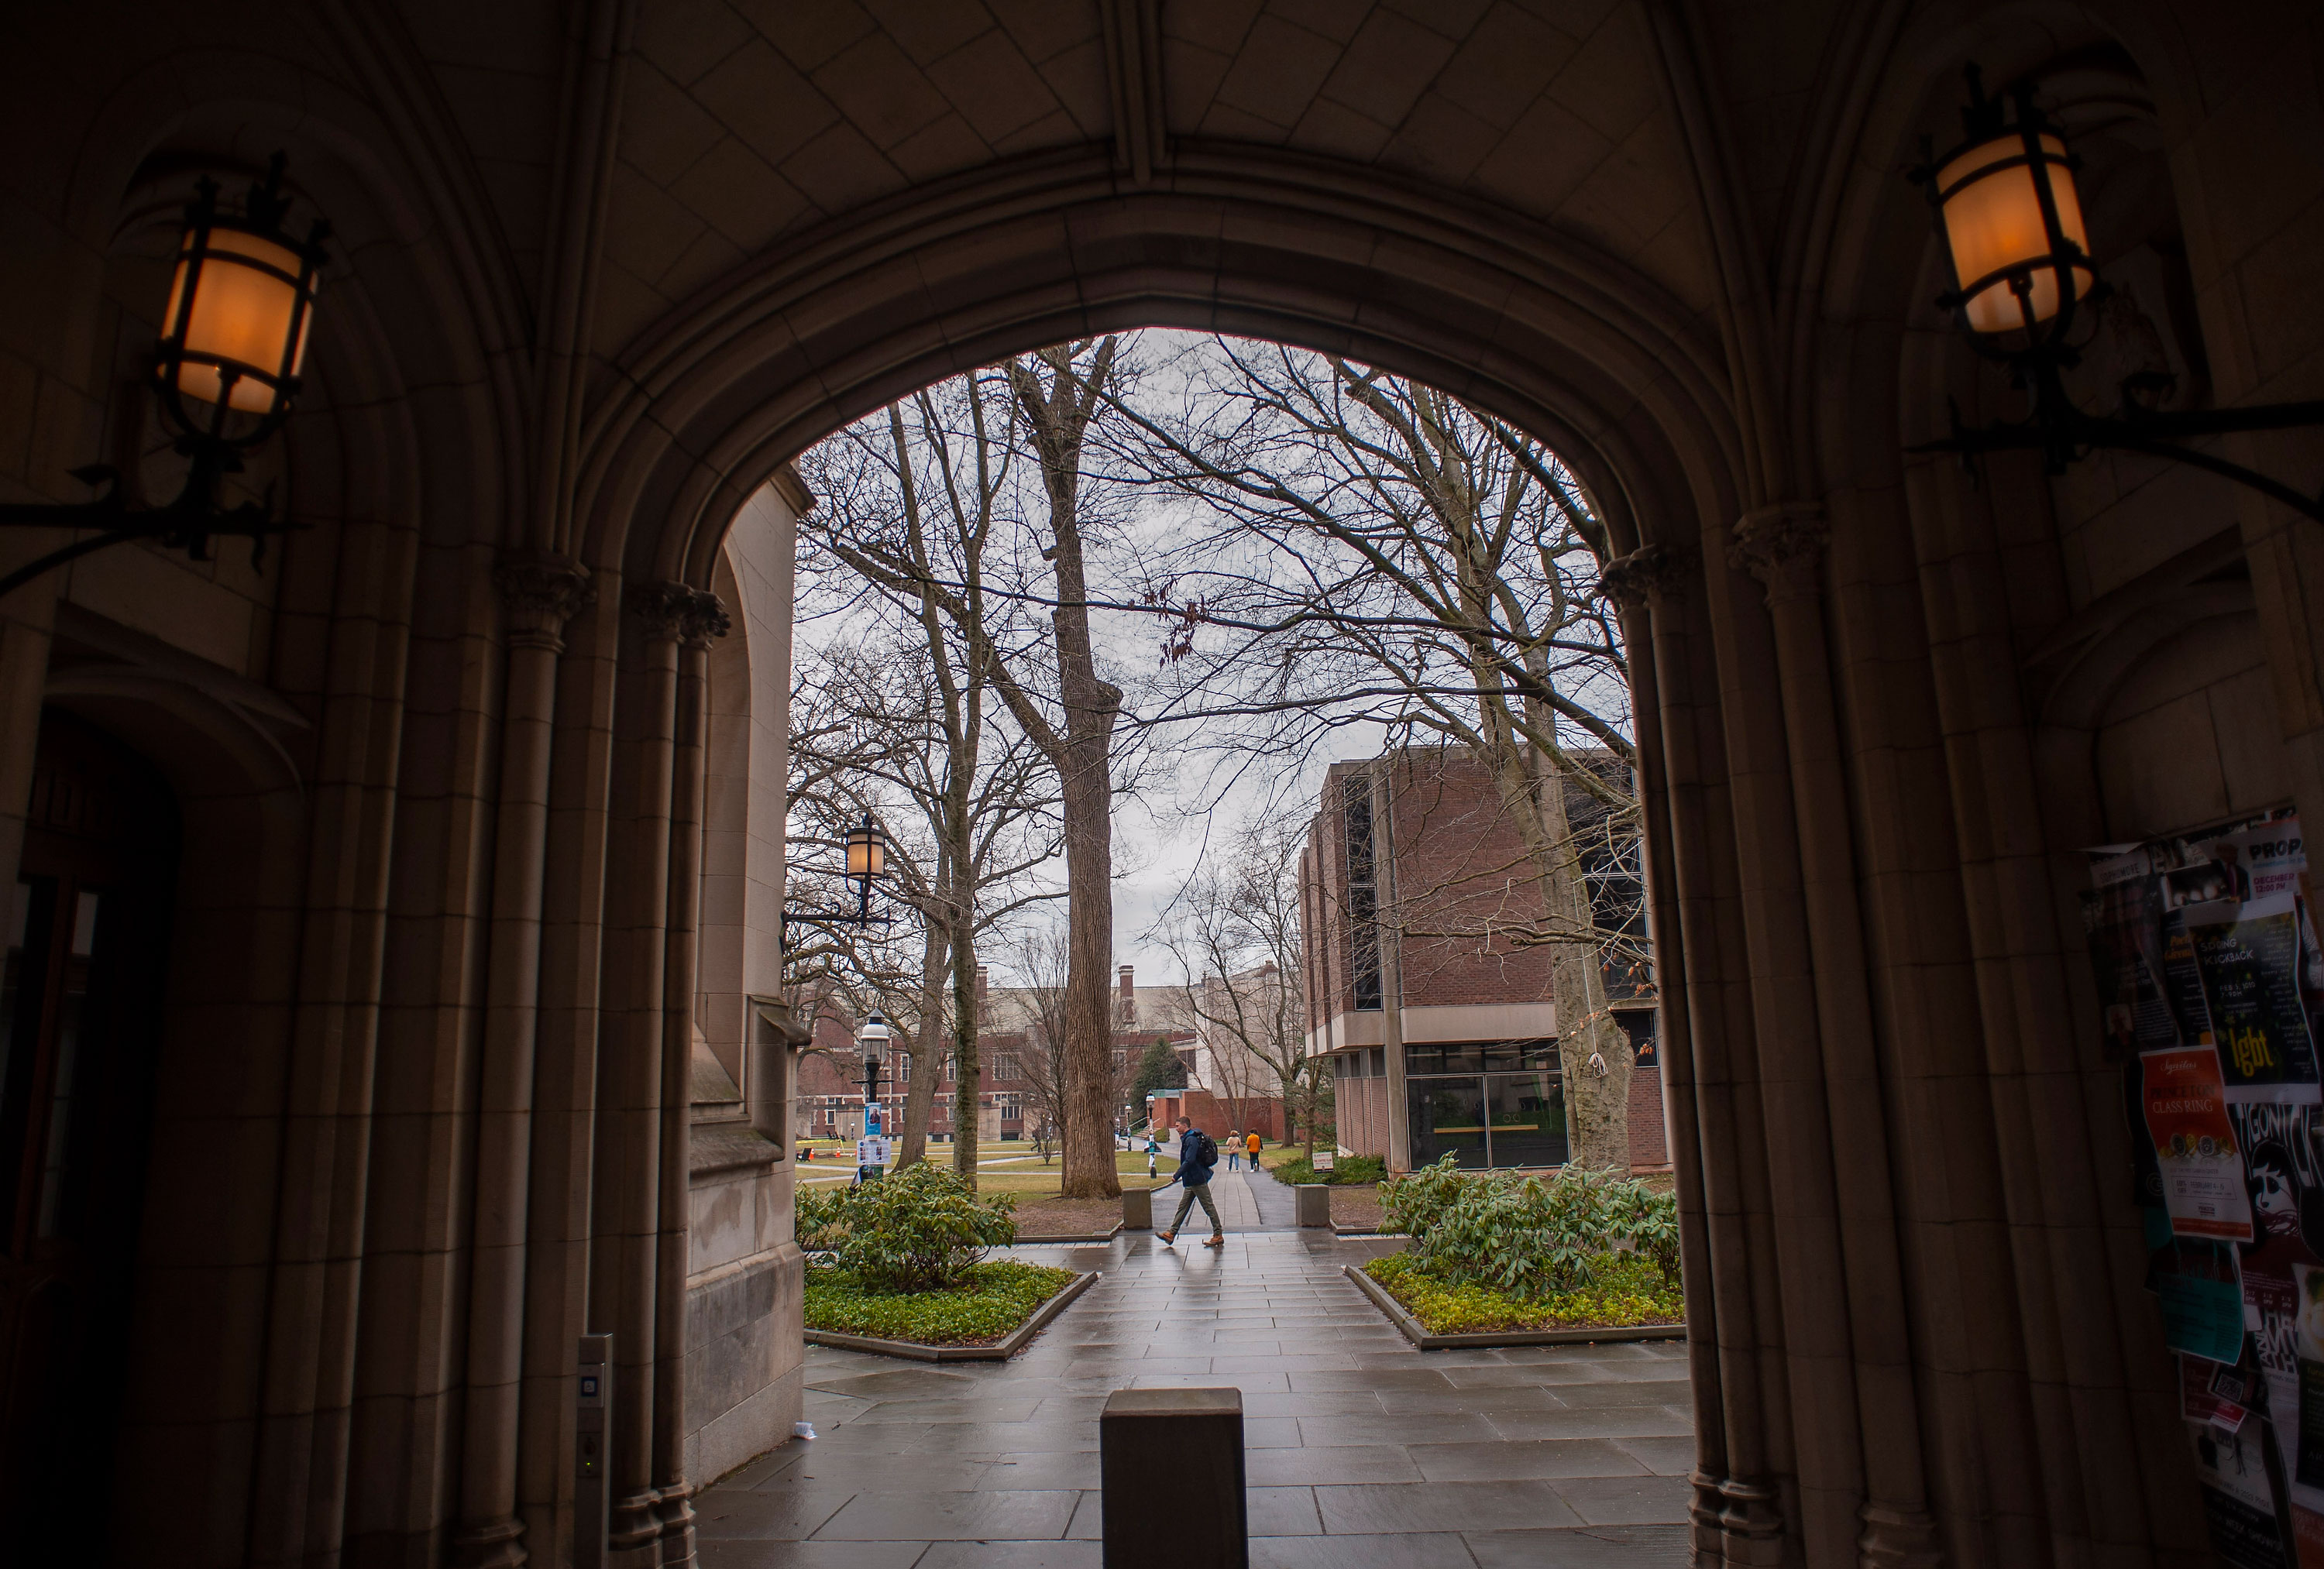 Princeton undergrads can return to campus next semester. They just have to stick to some strict rules